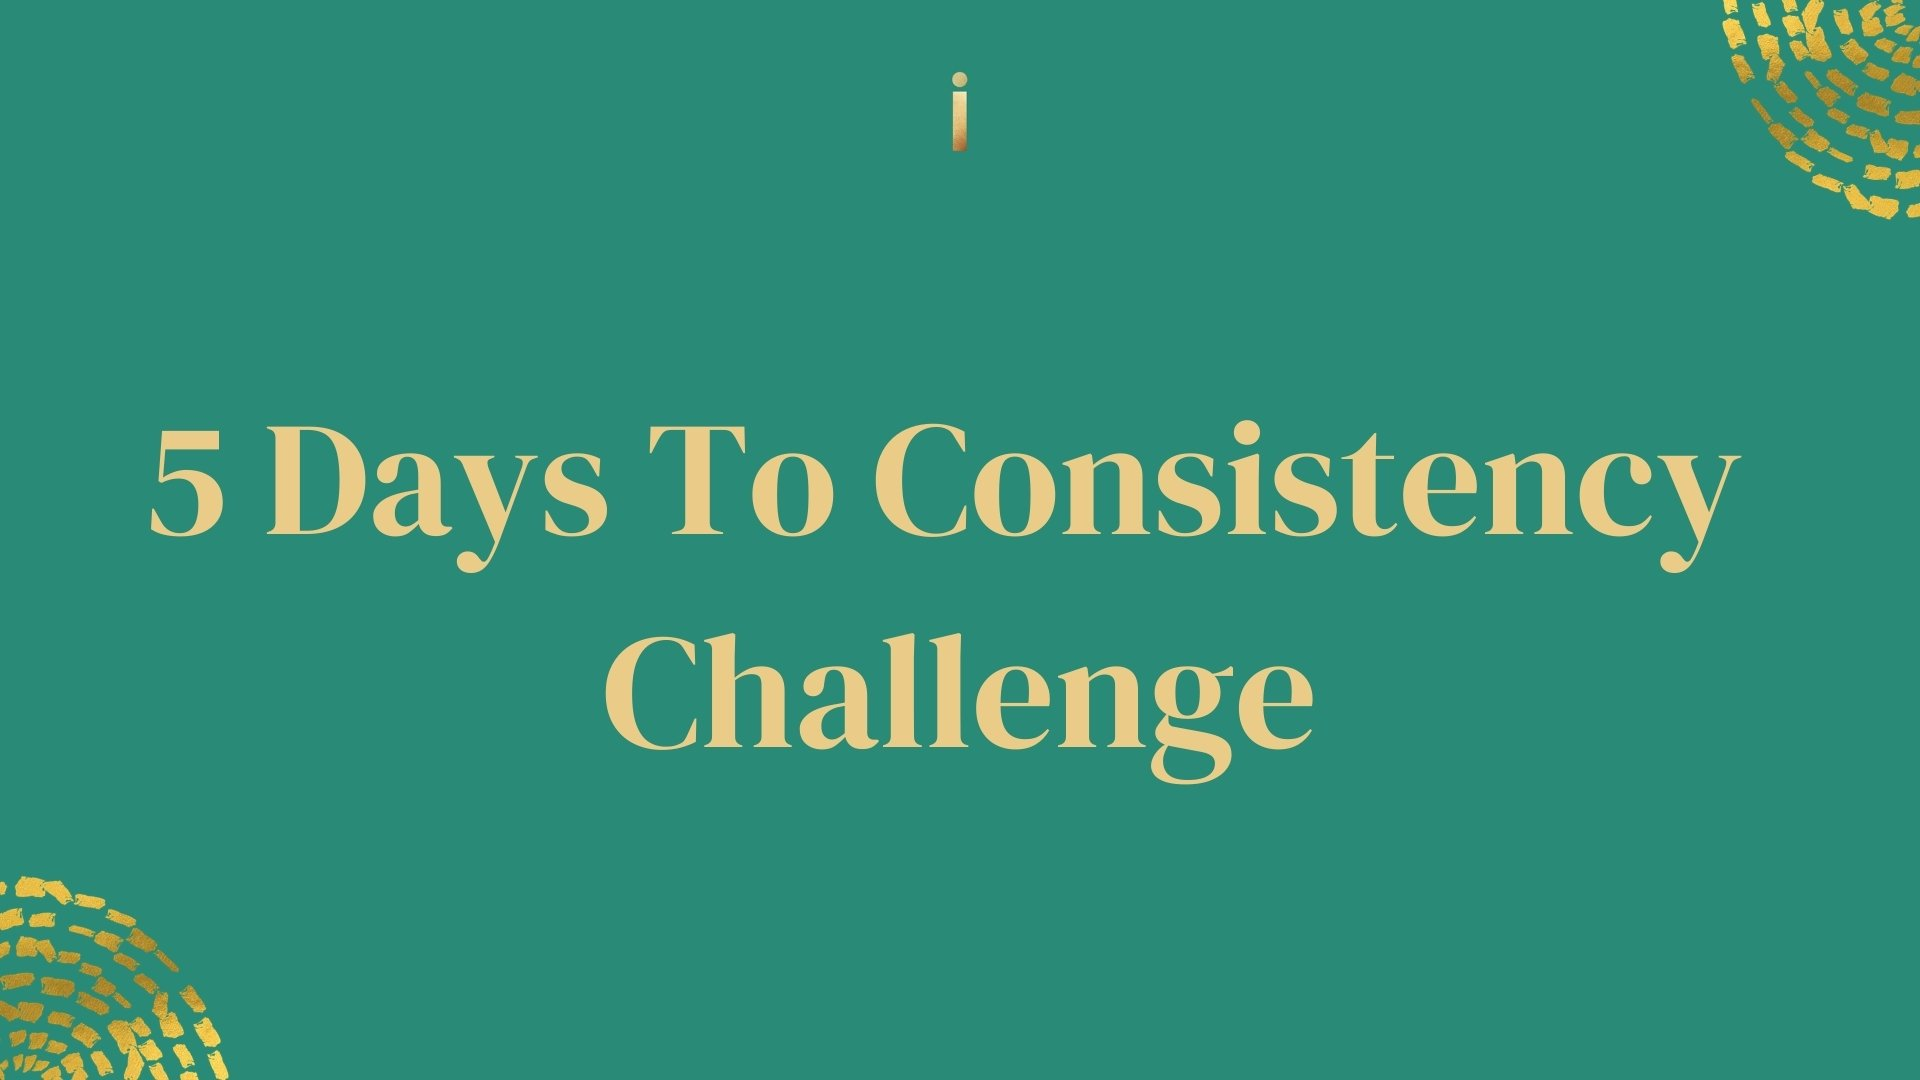 5 days to consistency challenge